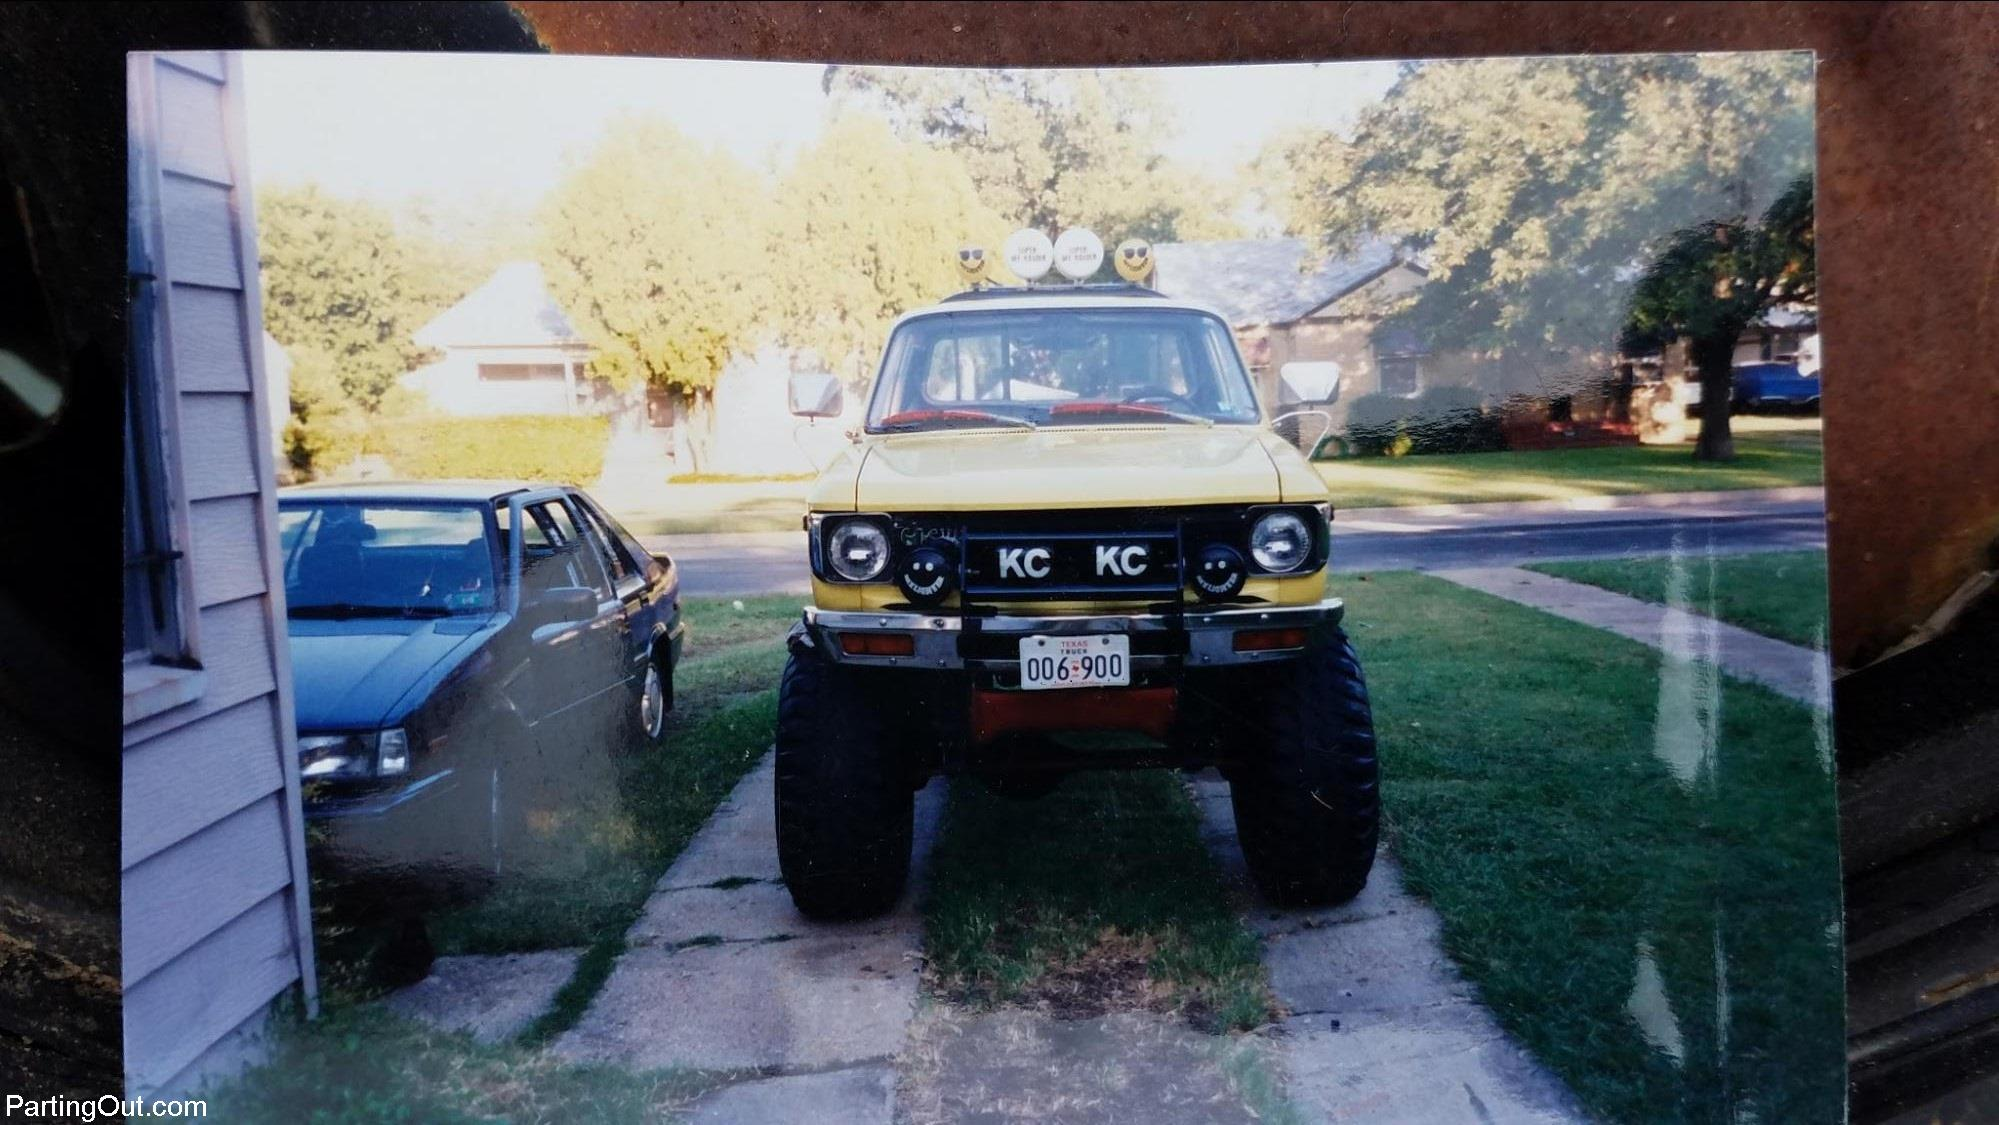 Parting Out Success Story: Ron Finds a Chevy LUV 4×4 Salvage Pickup ...